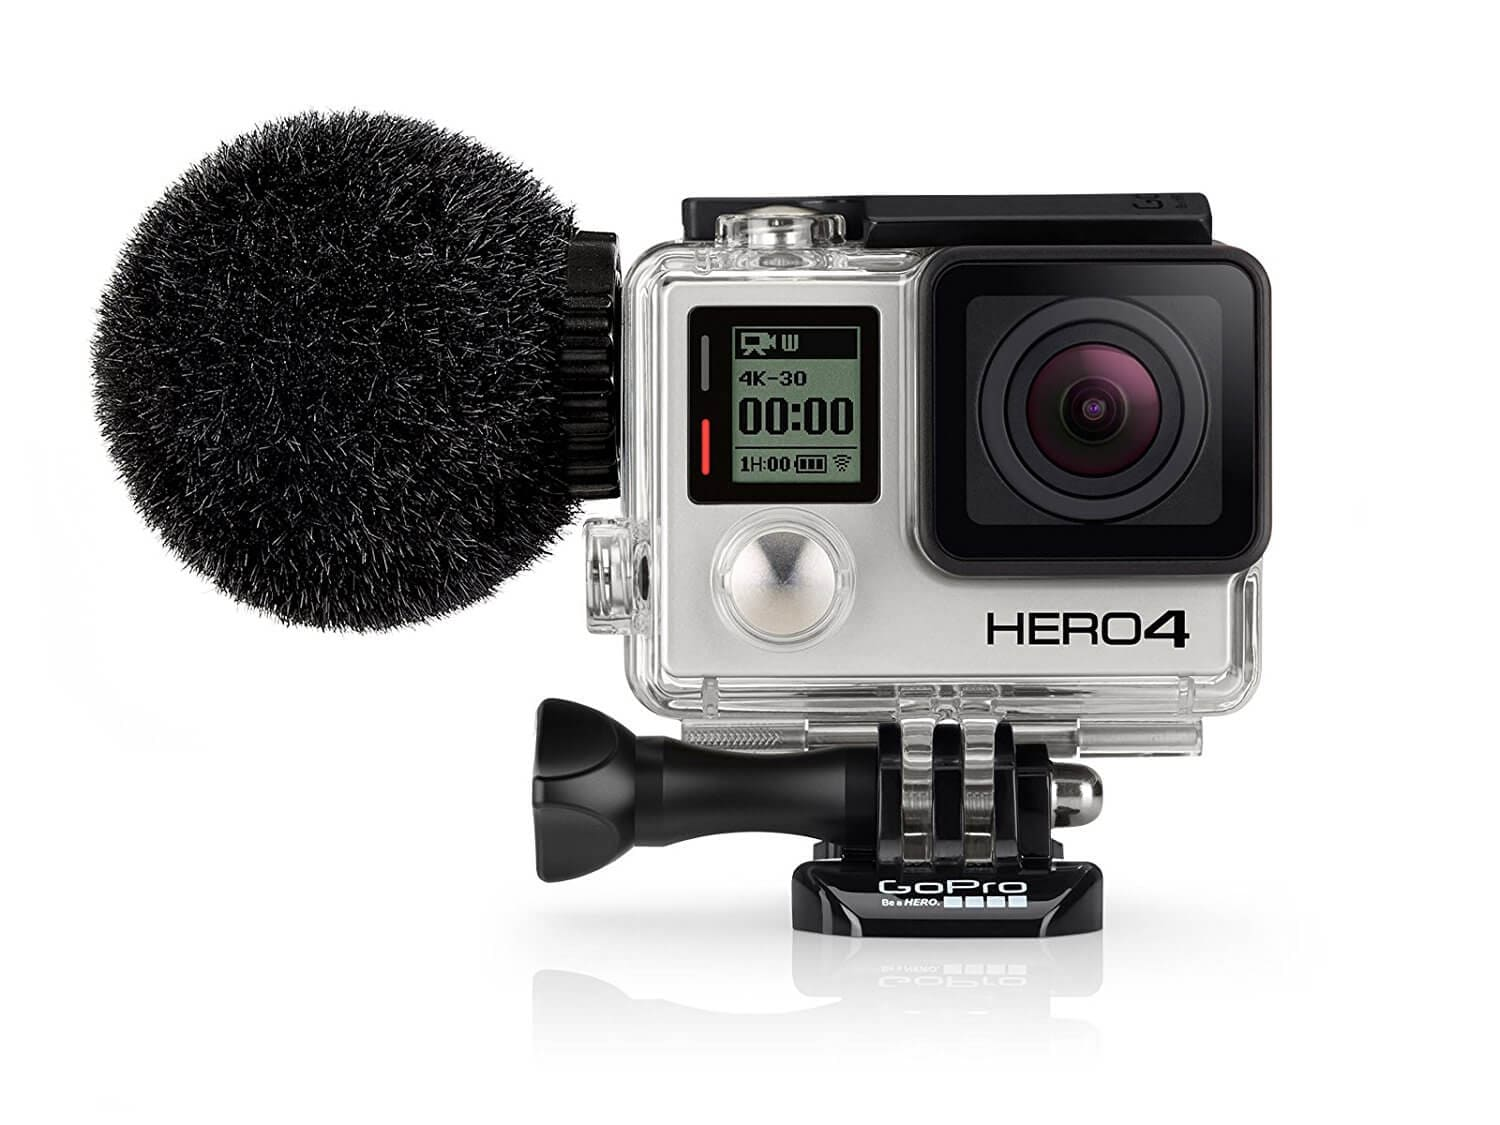 Best Waterproof Microphone: Sennheiser MKE 2 elements - Action Mic for the GoPro HERO4